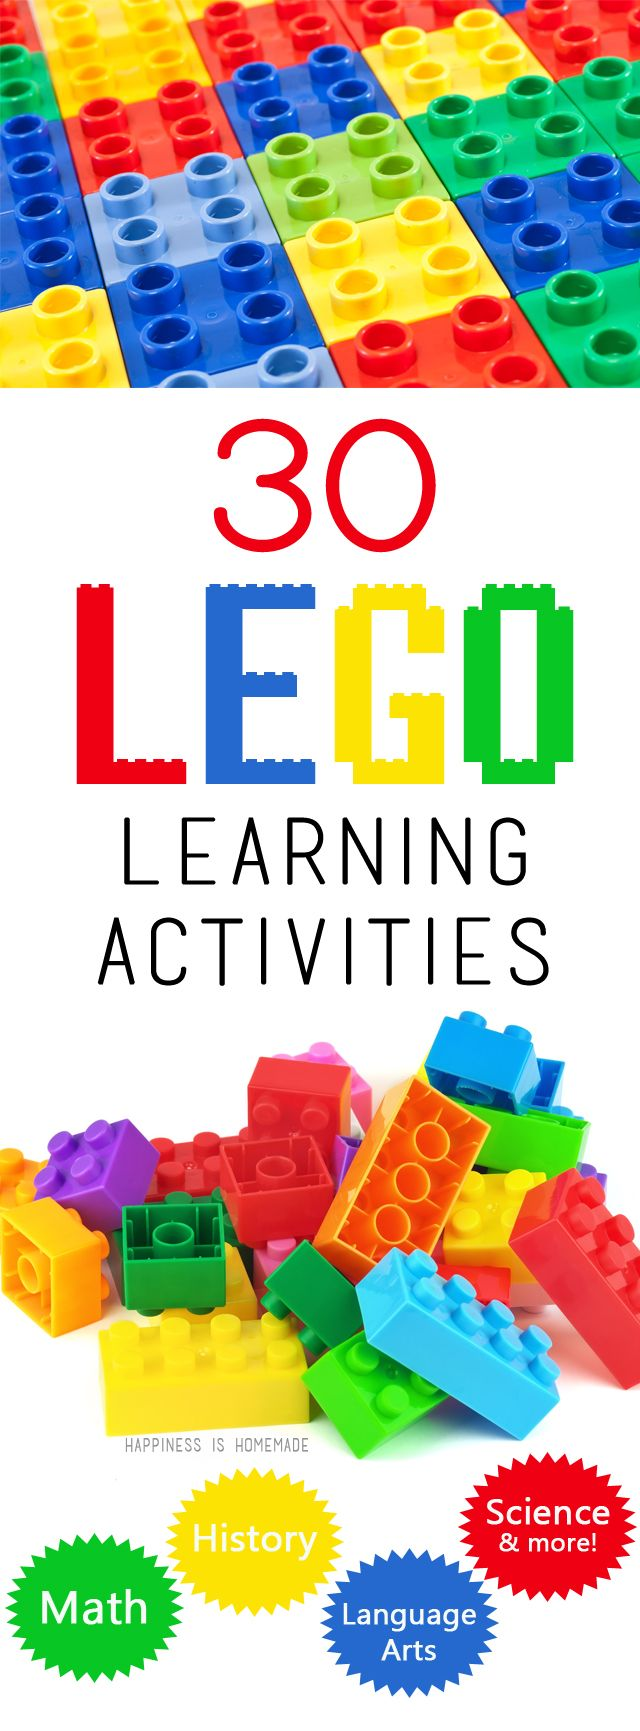 30 LEGO Learning Activities